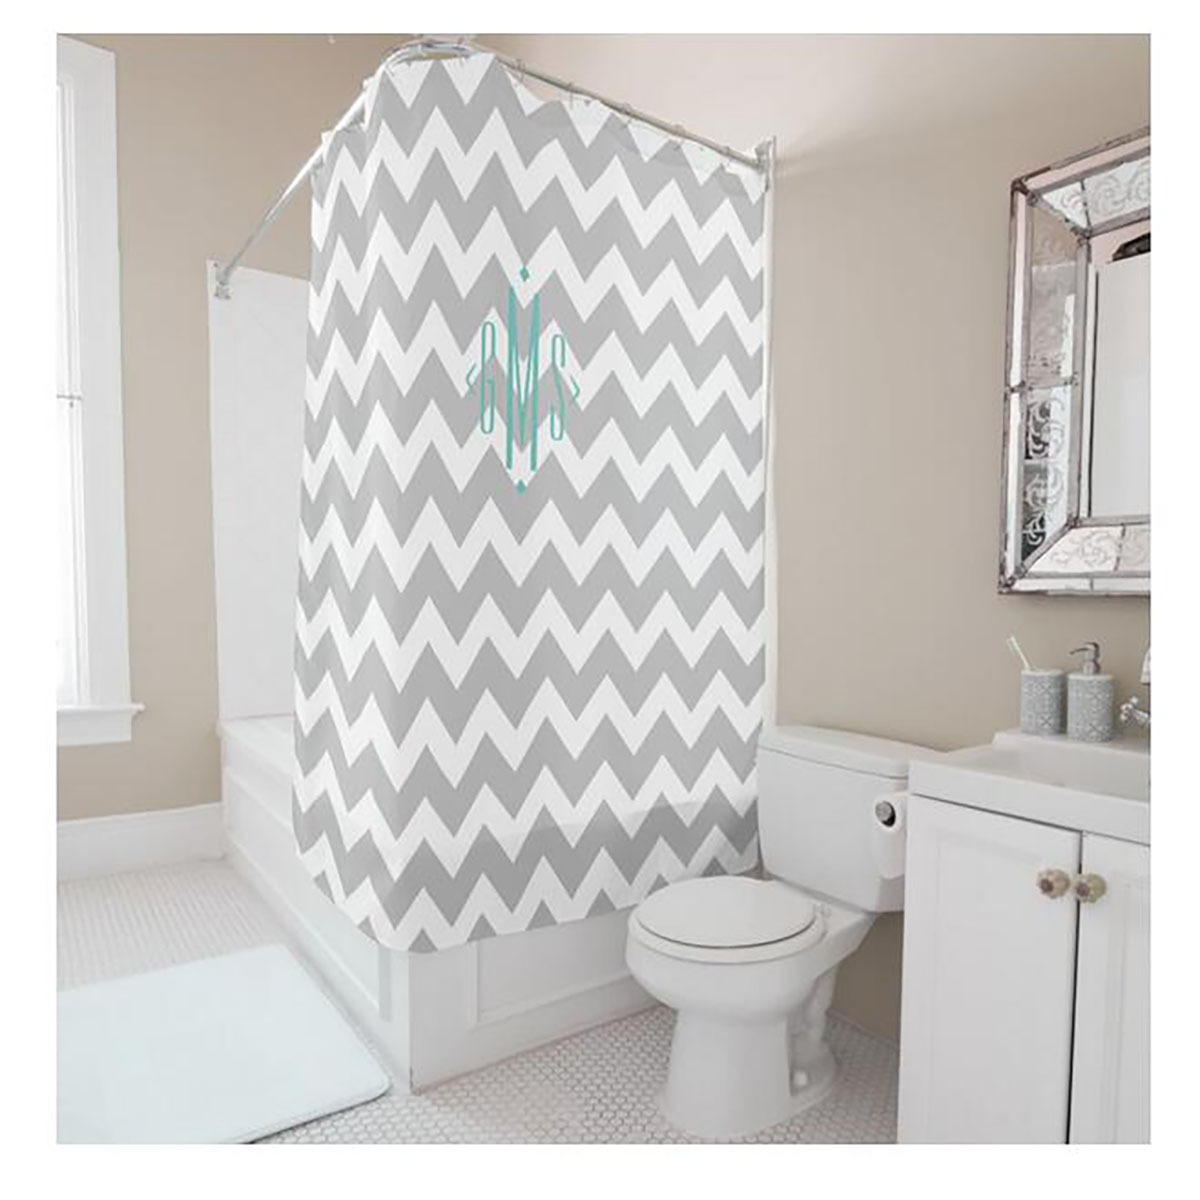 Romantic shower curtain - Simple Geometry Strips Letters Digital Printing Shower Curtain White Gray Polyester Waterproof Bathroom Shower Curtain China